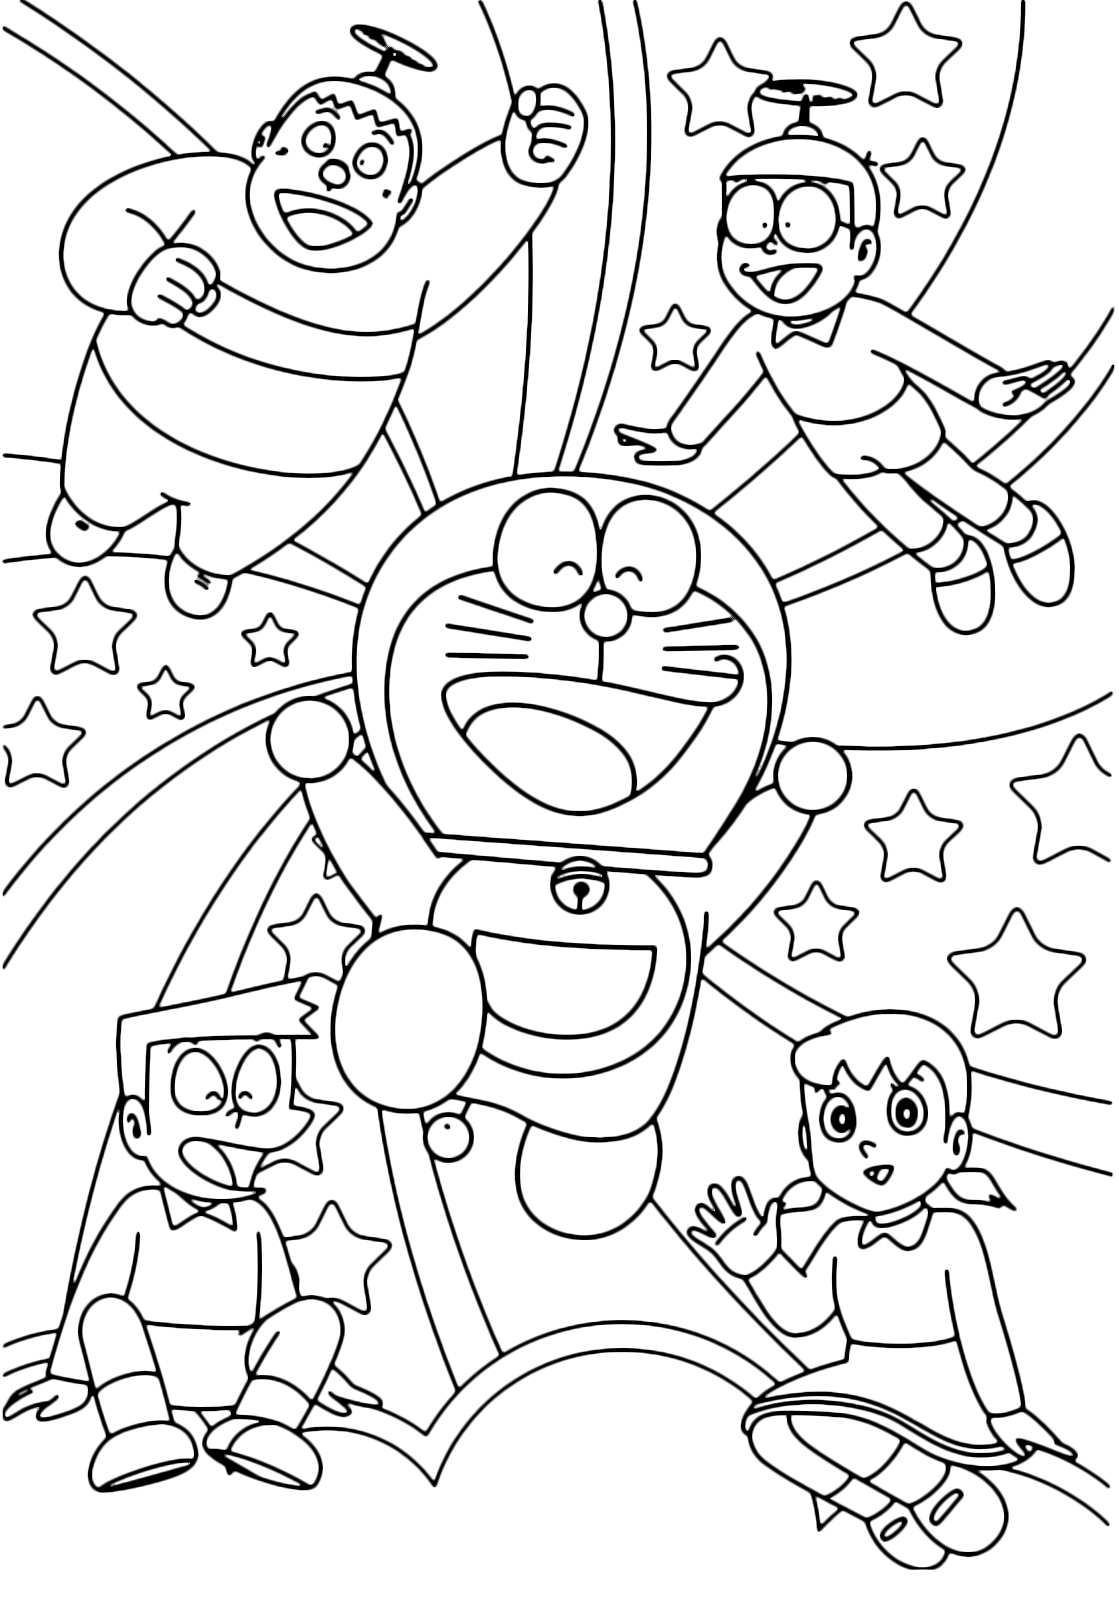 nobita pages for coloring photo 33